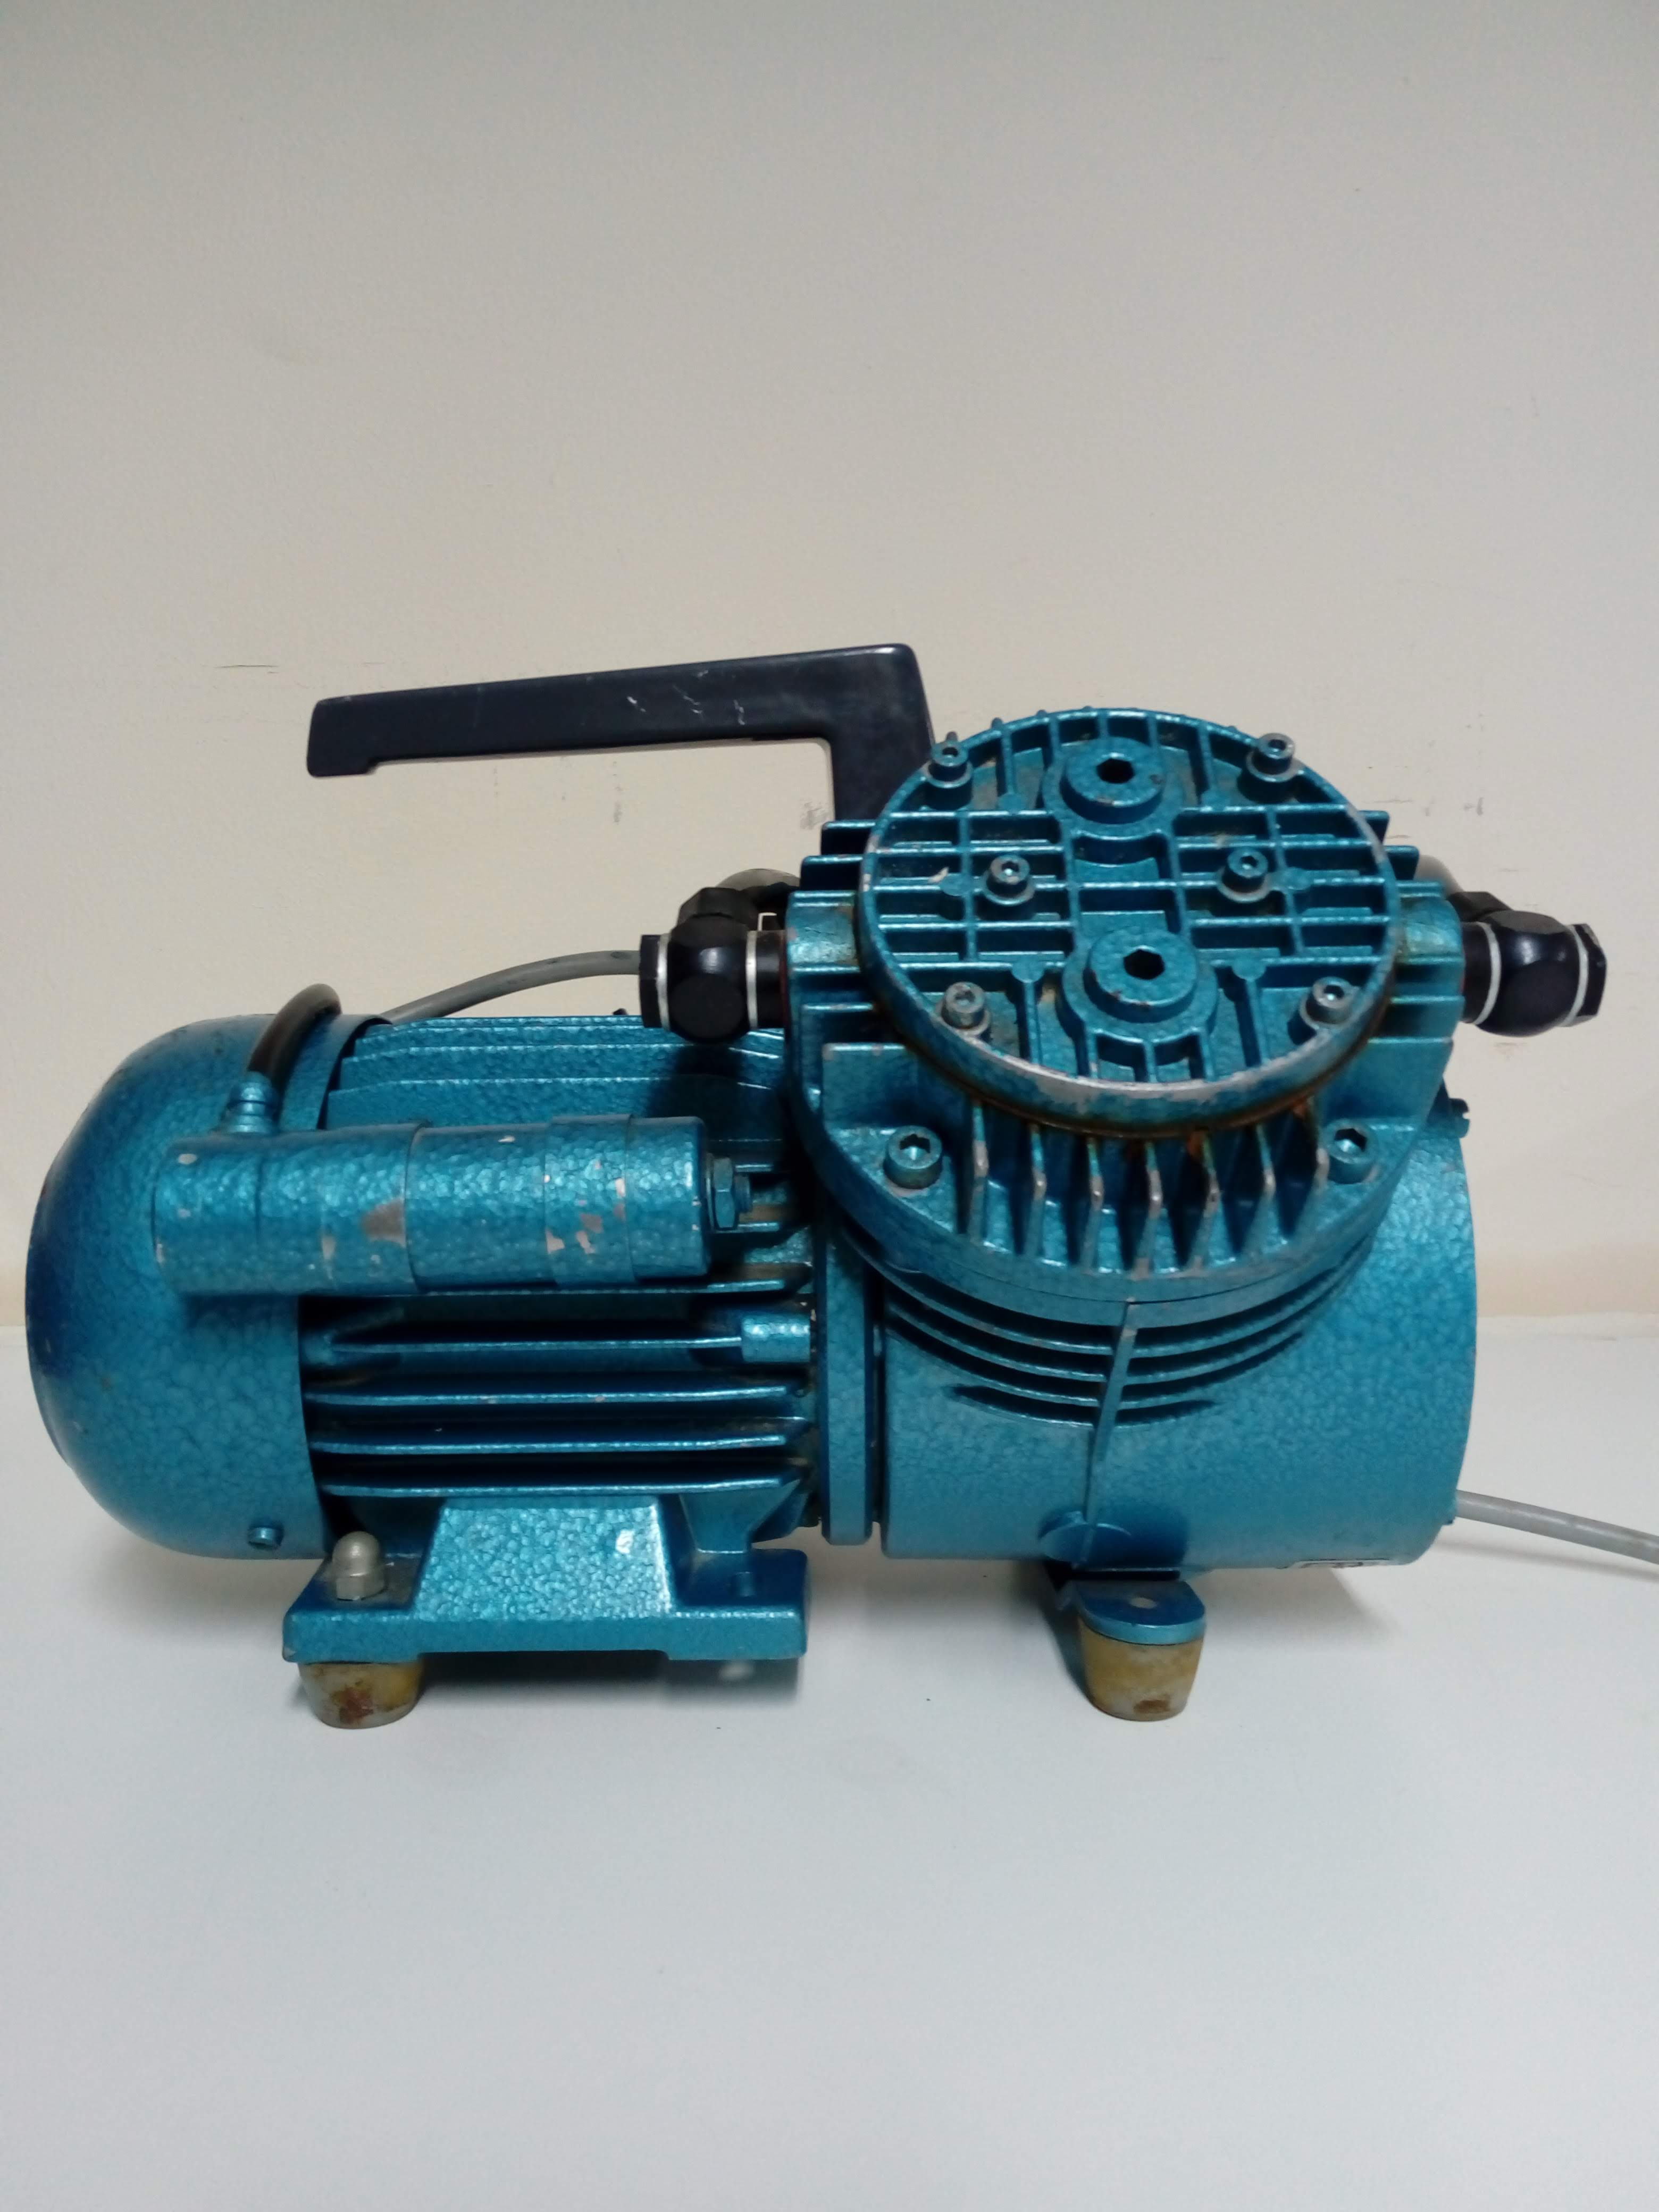 KNF Neuberger VDE 0530 Double Piston Pump